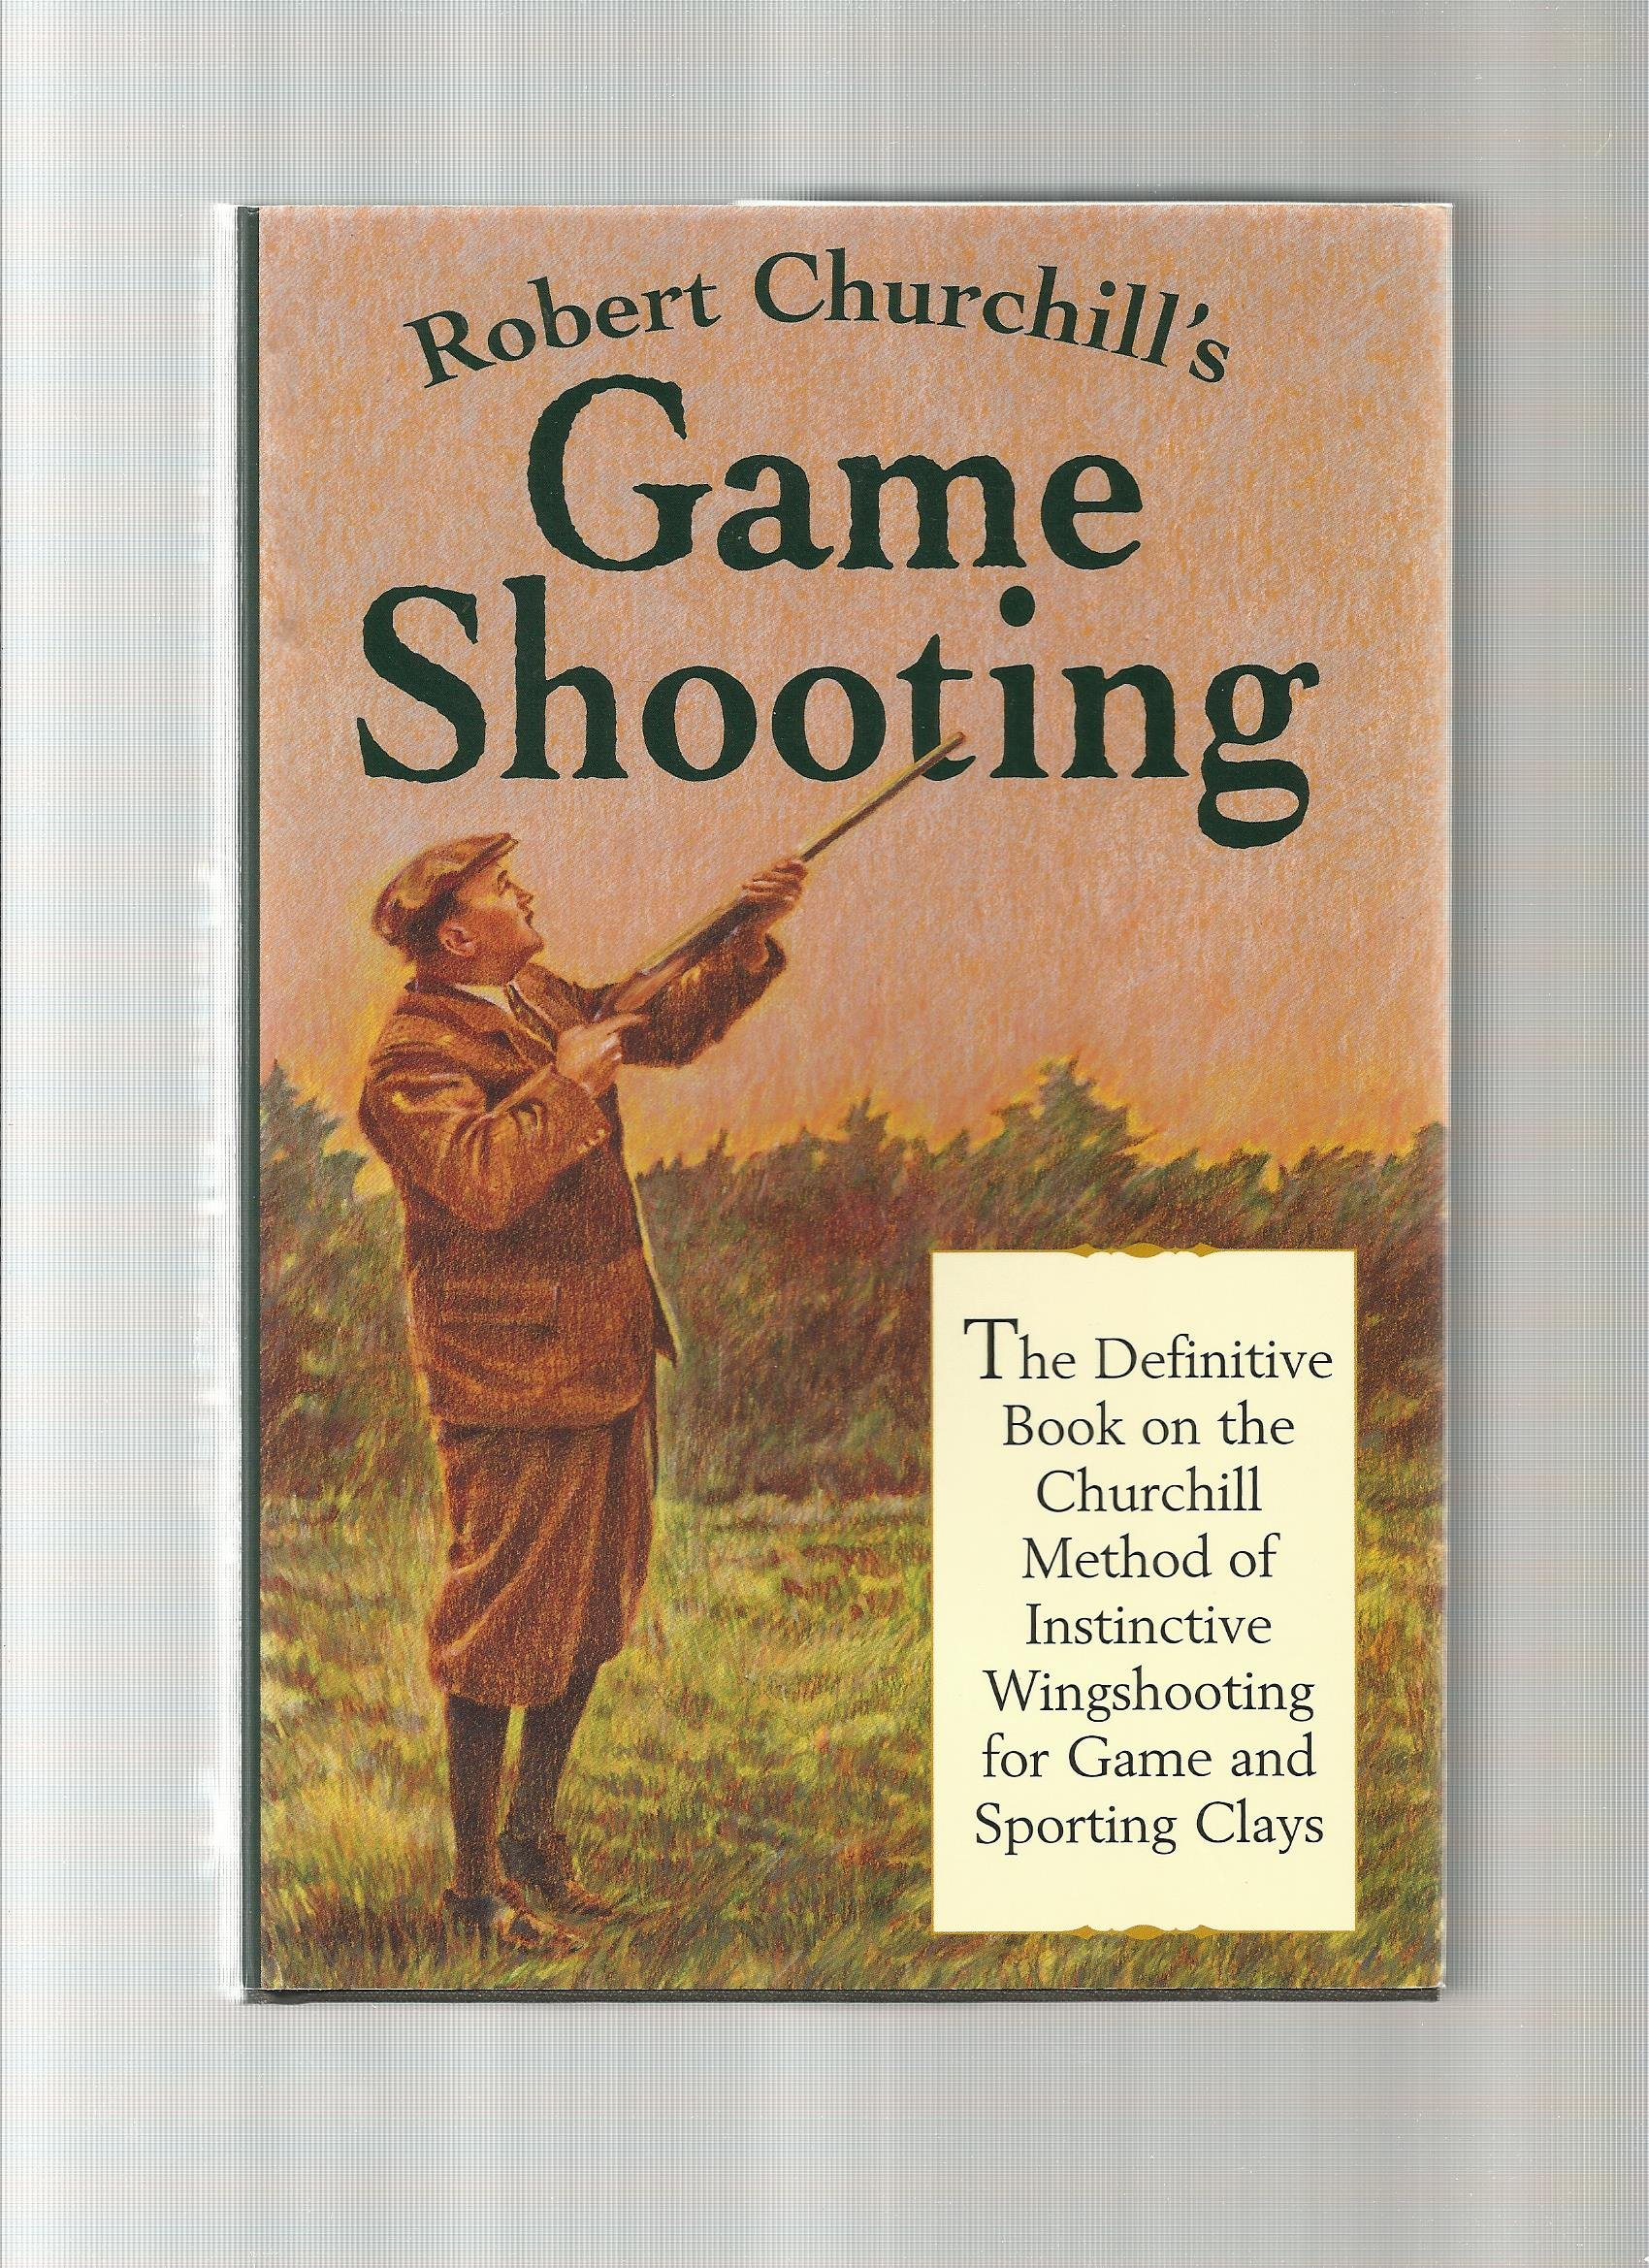 Robert Churchill's Game Shooting: The Definitive Book on the Churchill Method of Instinctive Wingshooting for Game and Sporting Clays